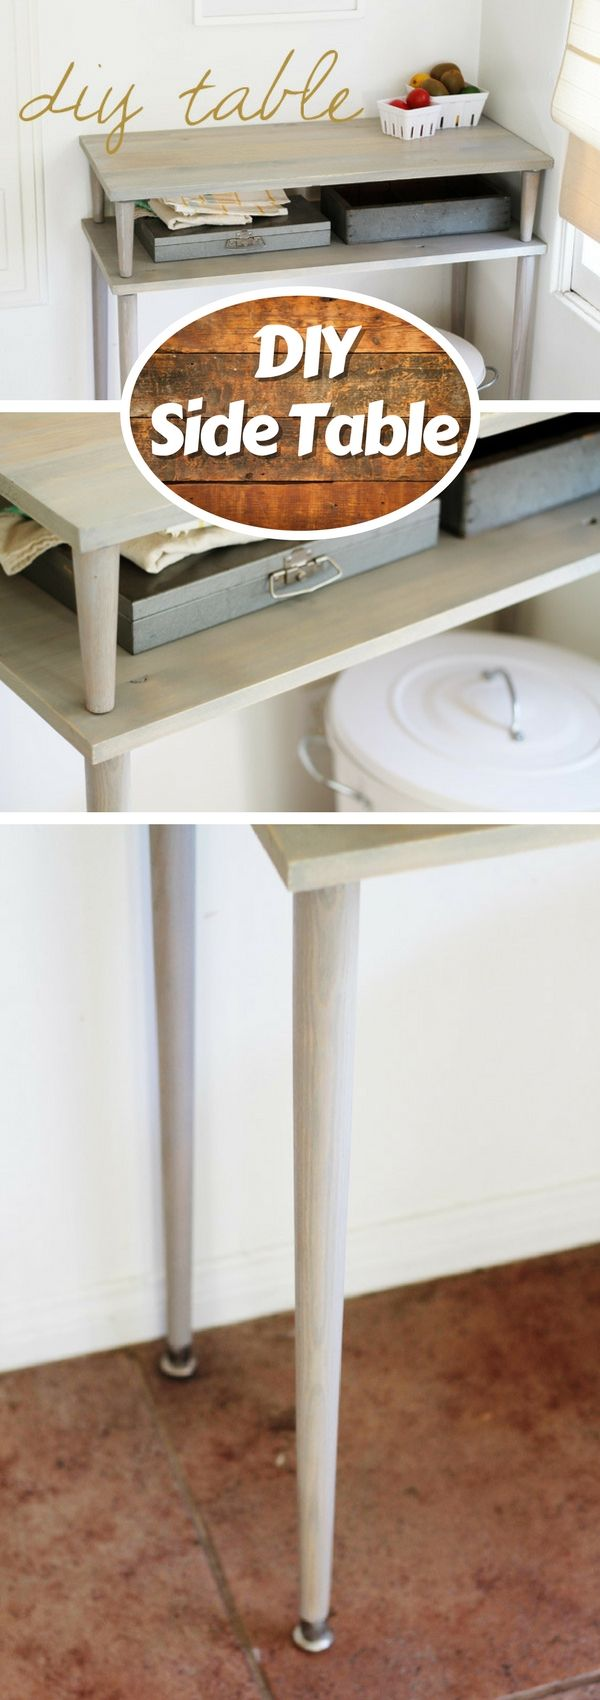 Check out how to build a DIY side table @istandarddesign Tutorial: acutedesigns.blogspot.com This side table is simple but good looking with a hint of shabby chic style. And the best part about it is that you can easily do it yourself at home. If you think you may use this table, follow the tutorial for the DIY project. This article is sponsored by: If you liked this post, check out what other cool articles we have: Industry Standard Design Editorial story by Industry Stand...